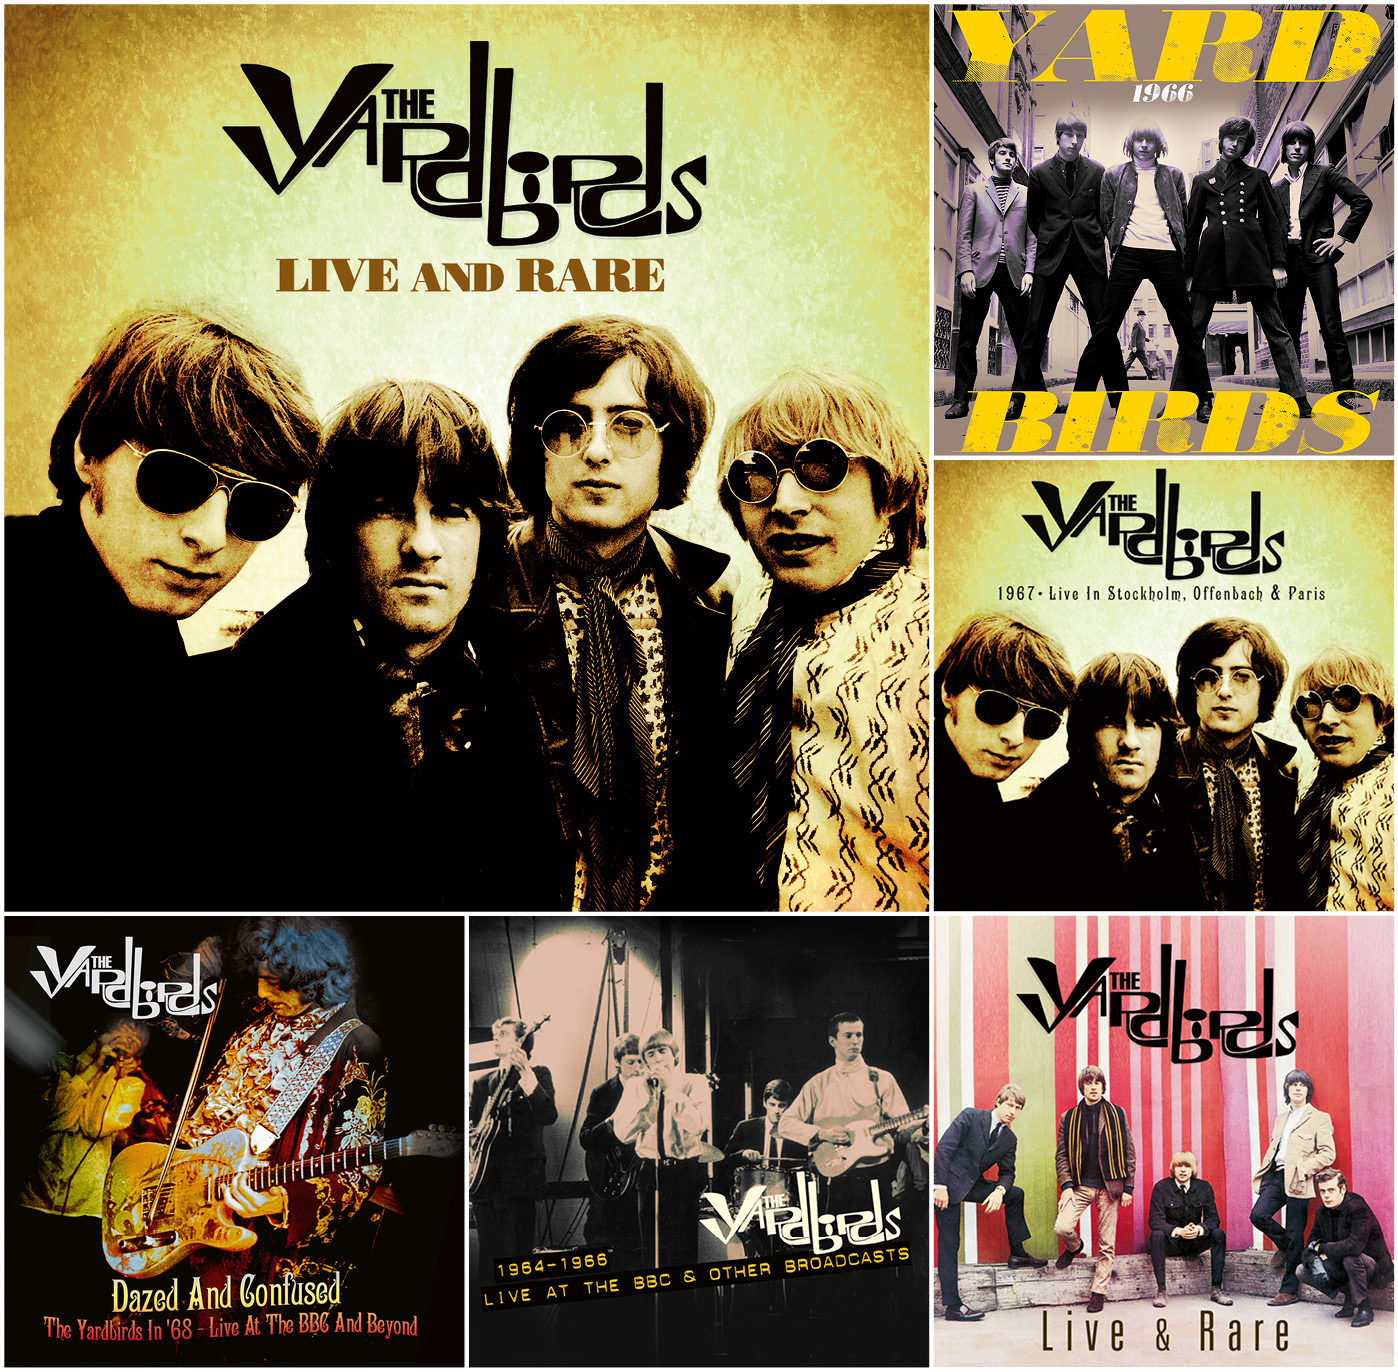 Yardbirds, The – Live & Rare – Limited Edition Boxset